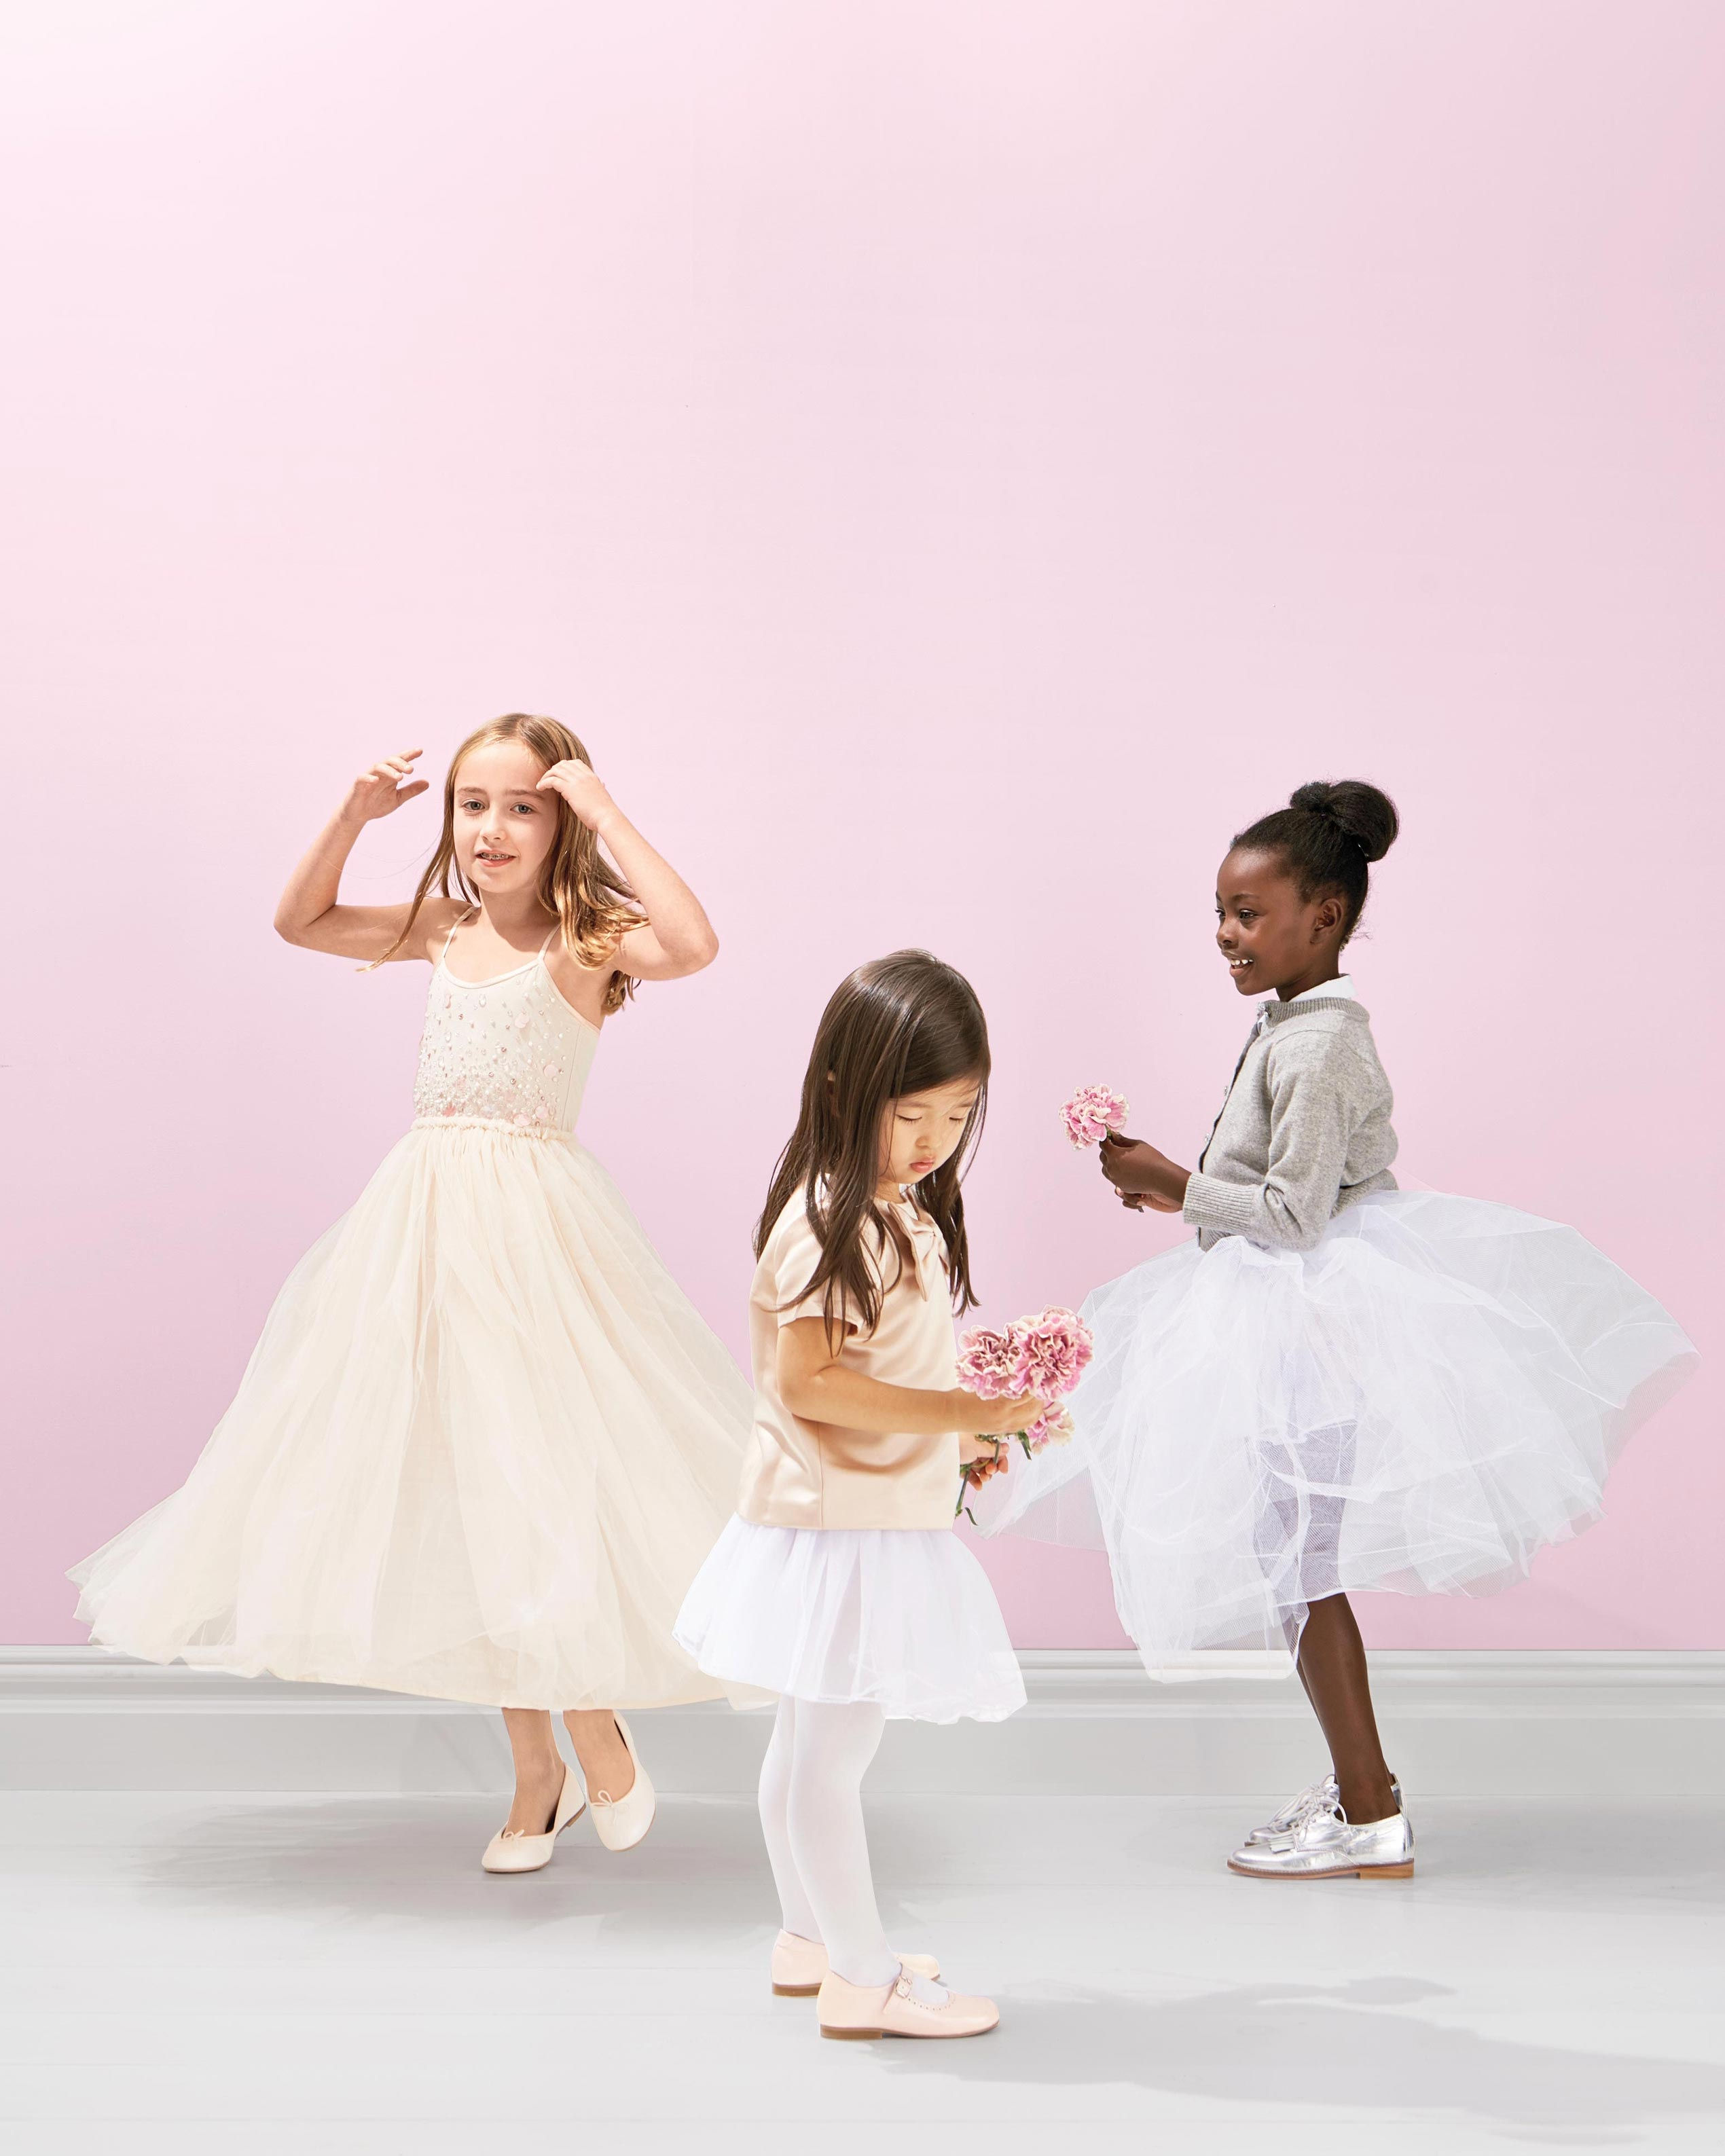 mgirls-in-tutus-237-d112637-comp.jpg